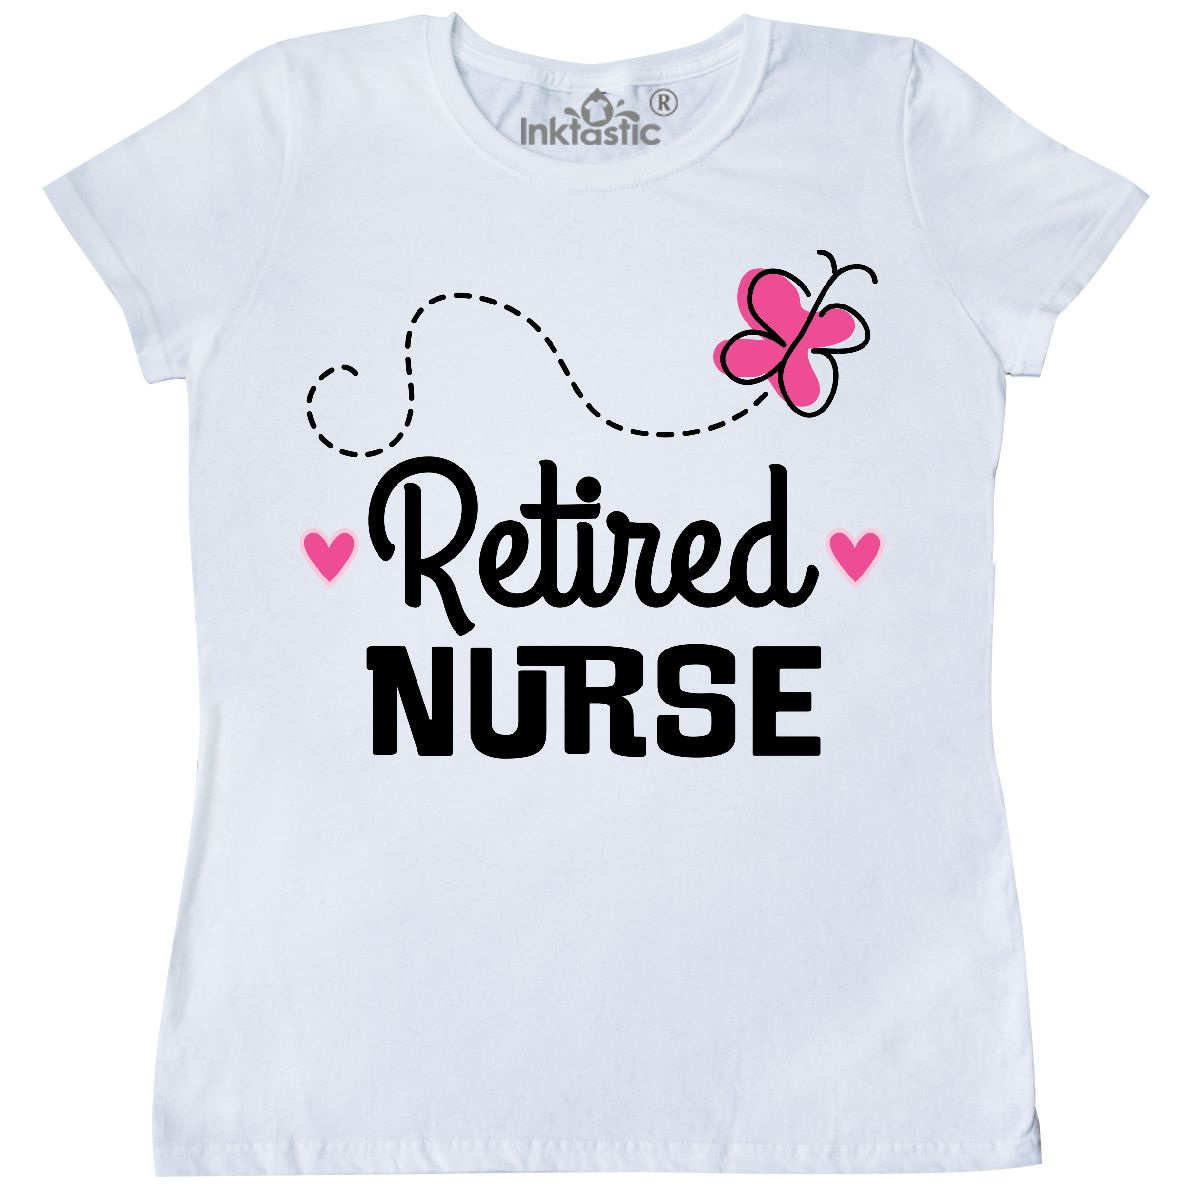 Inktastic Retired Nurse Nursing Retirement Gift Women's T-Shirt Career Picu Nicu